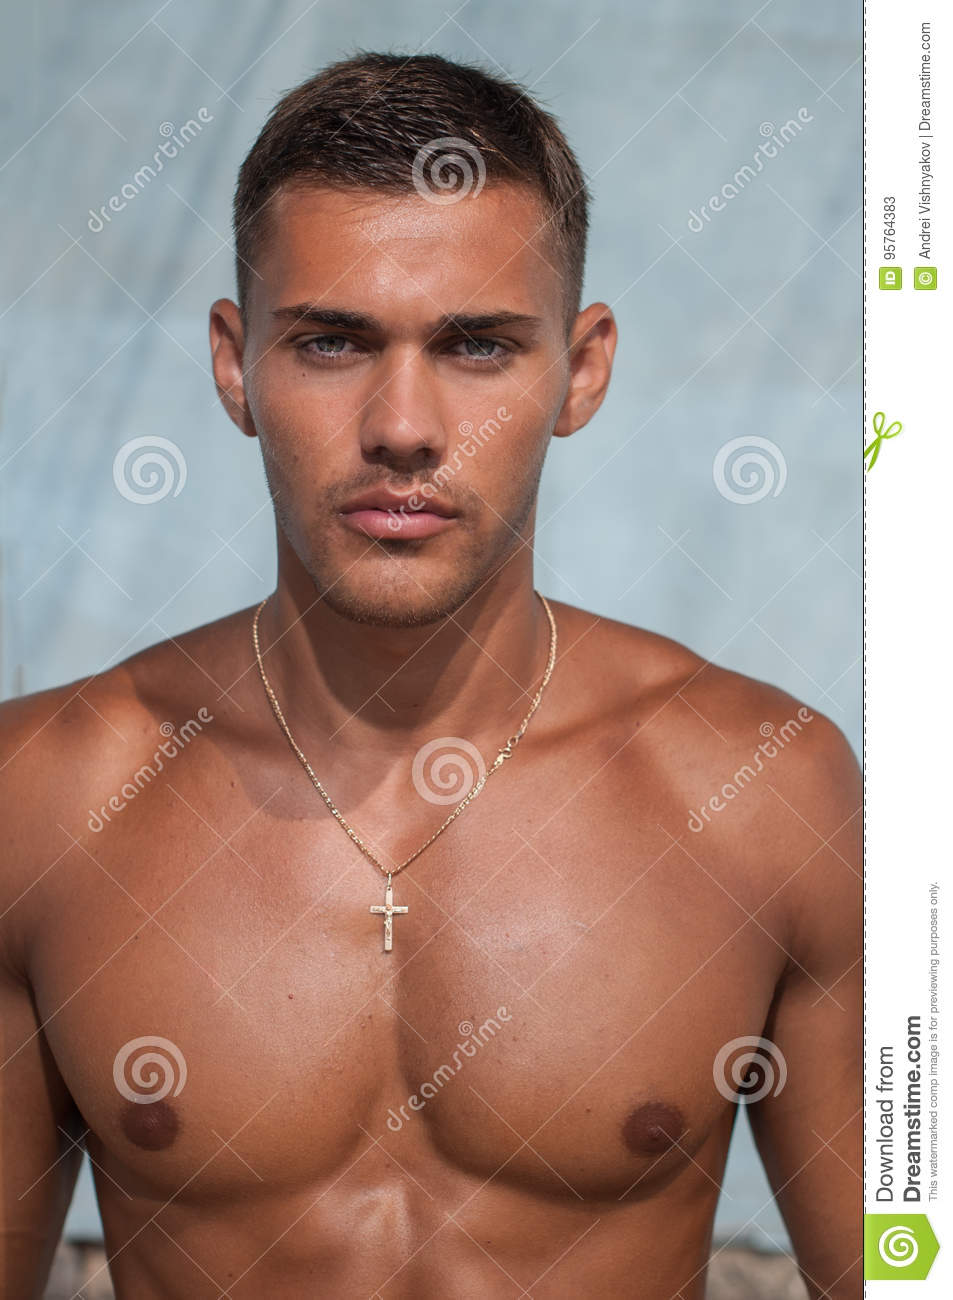 Shirtless male model